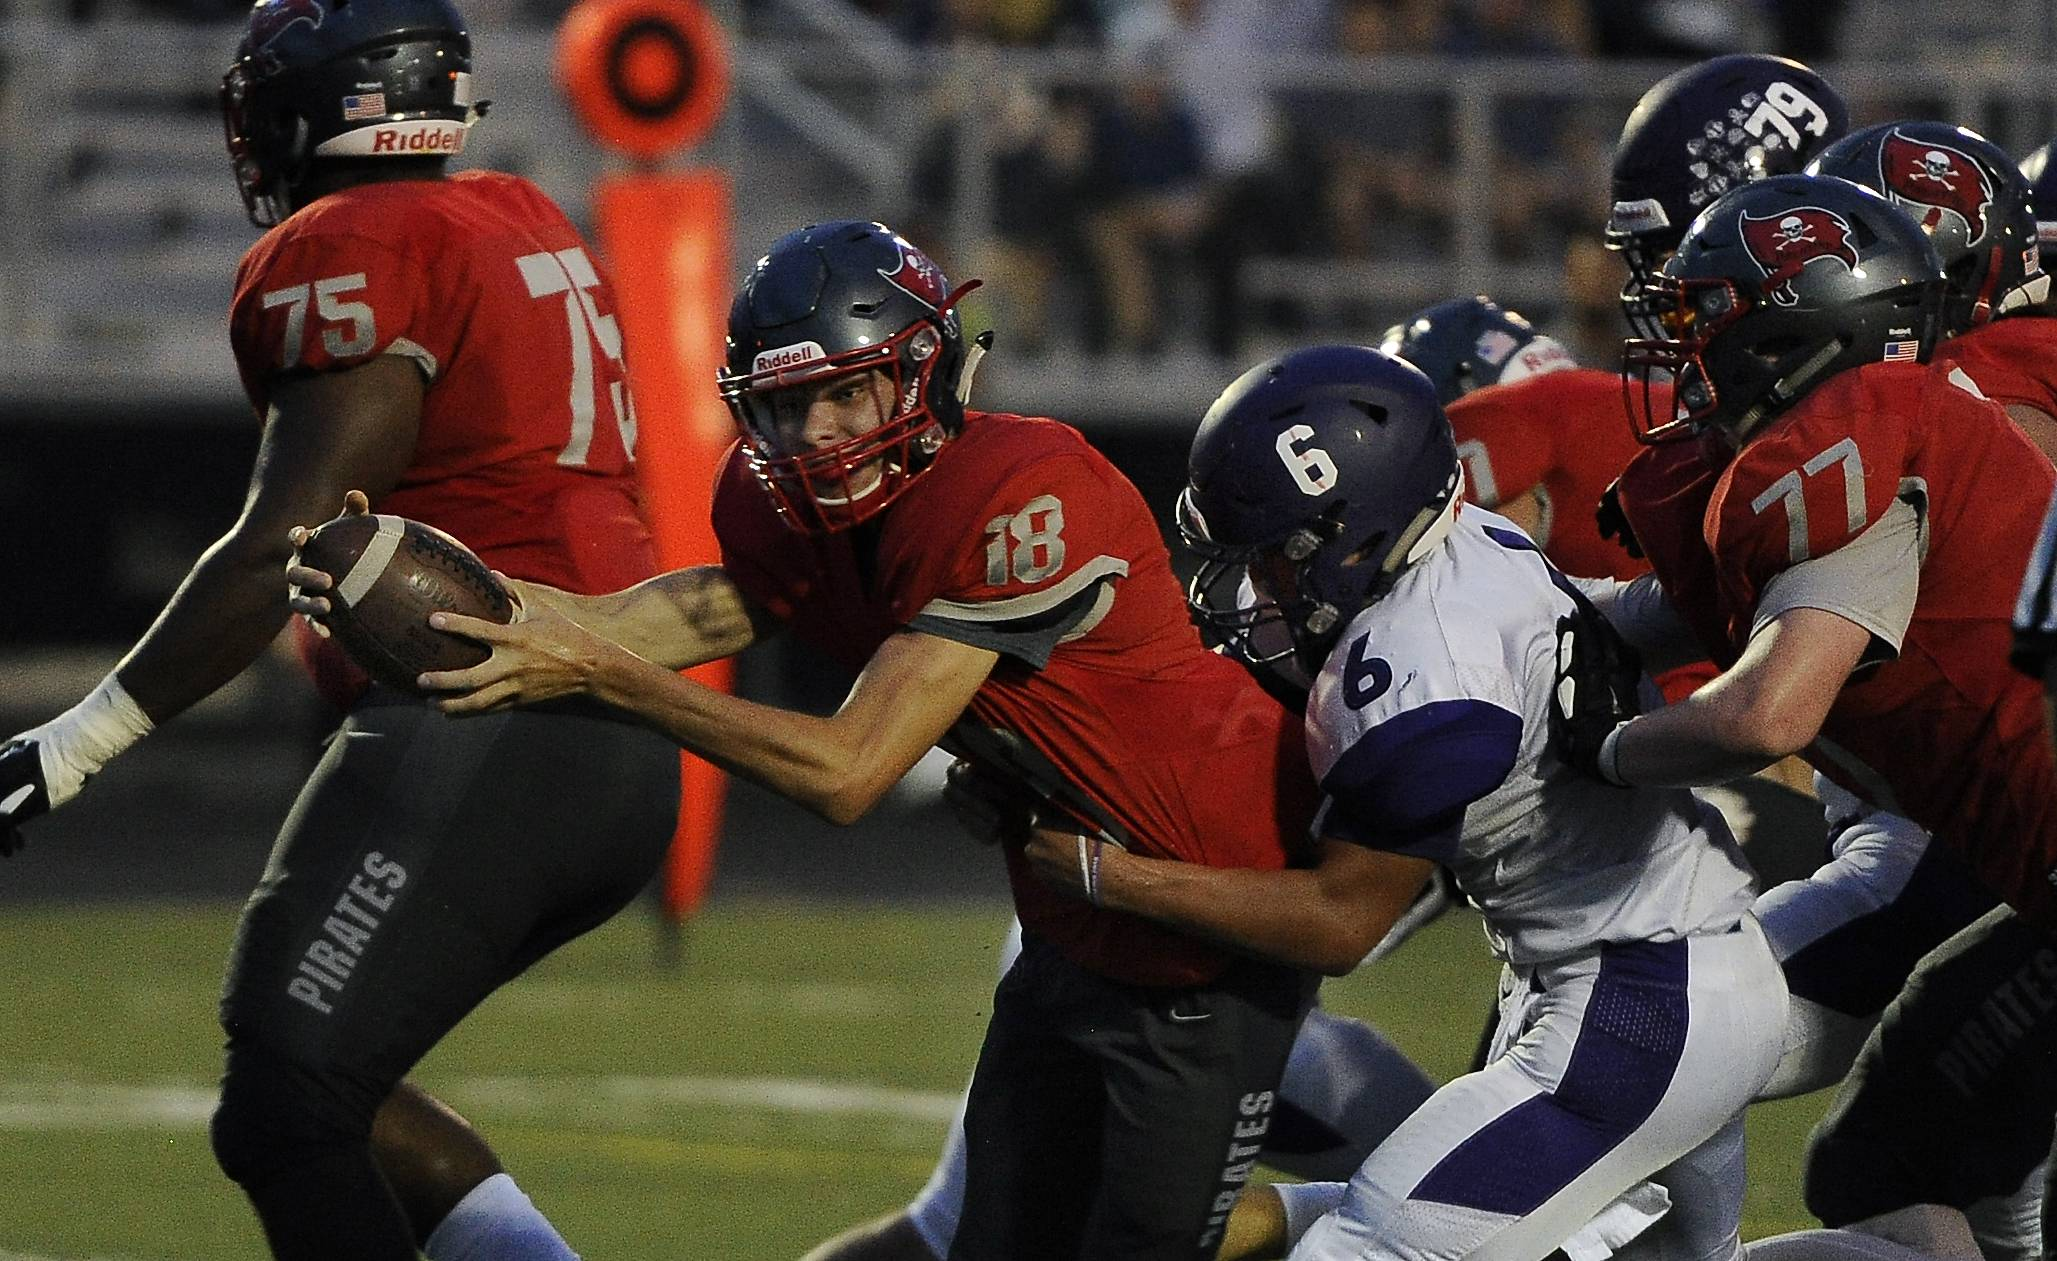 Palatine quarterback Zac Garnmeister reaches across the goal line for the touchdown despite pressure from Rolling Meadows' Jordan Wiles in first quarter Friday at Palatine.